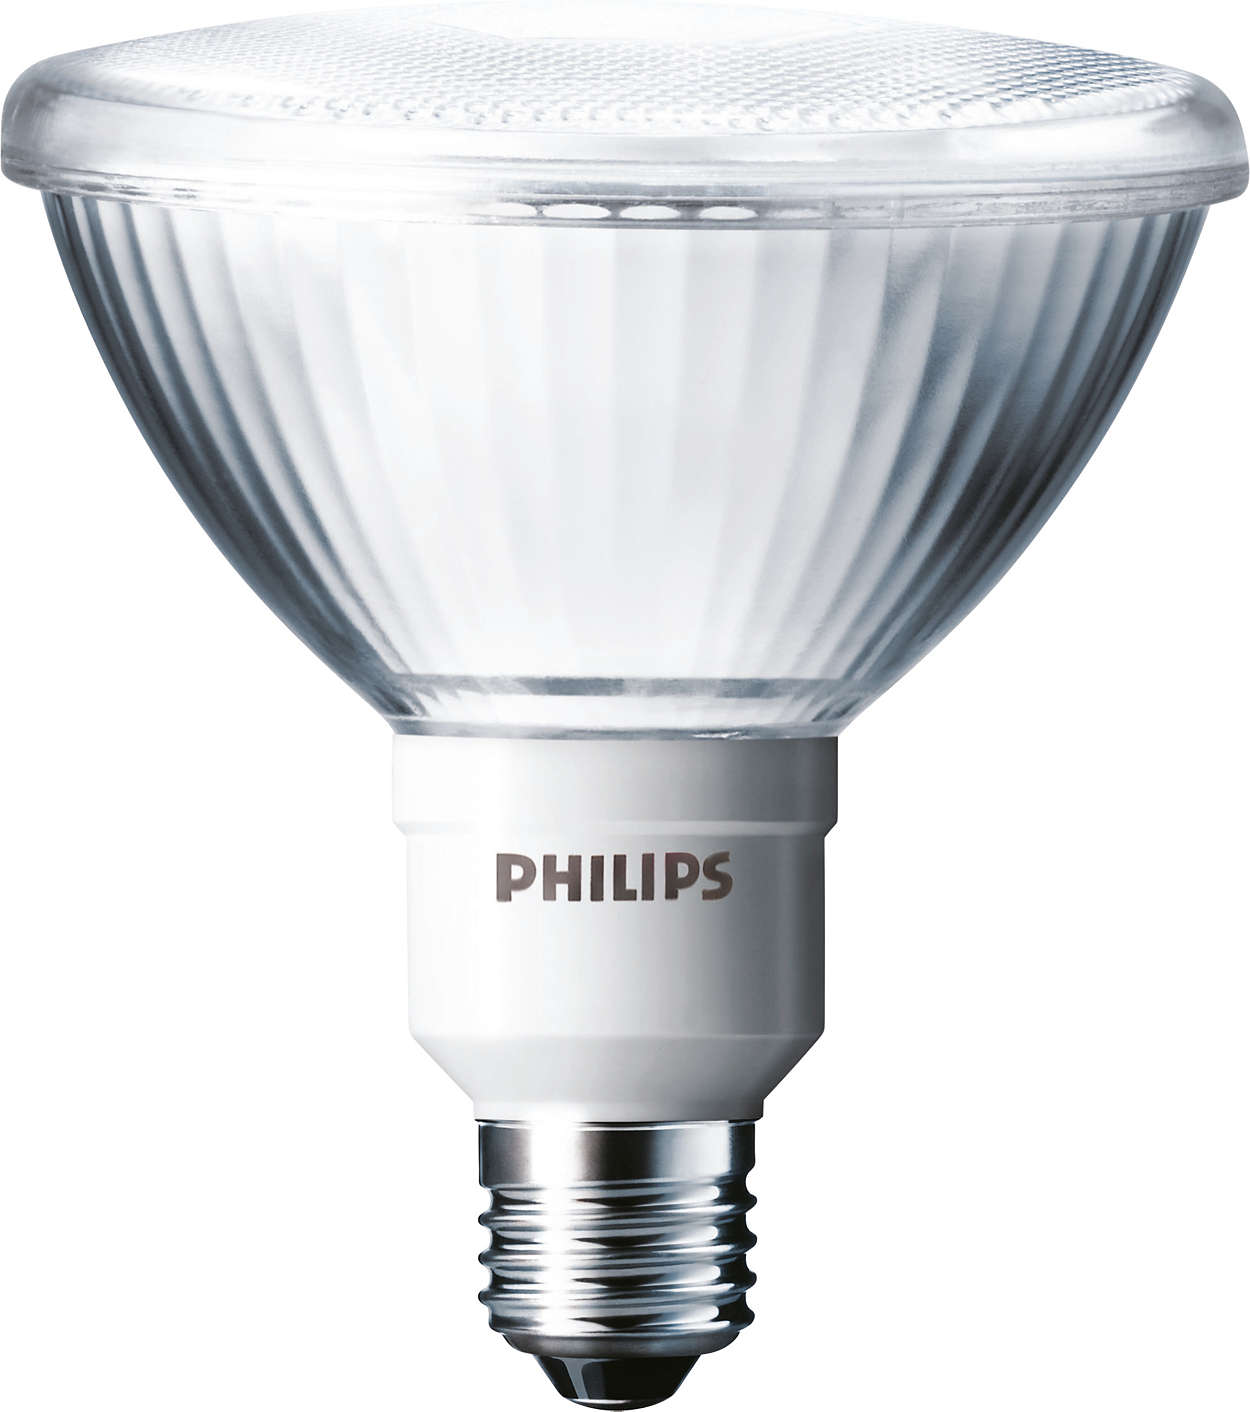 Designed for incandescent reflector or halogen replacement in the shape of PAR38